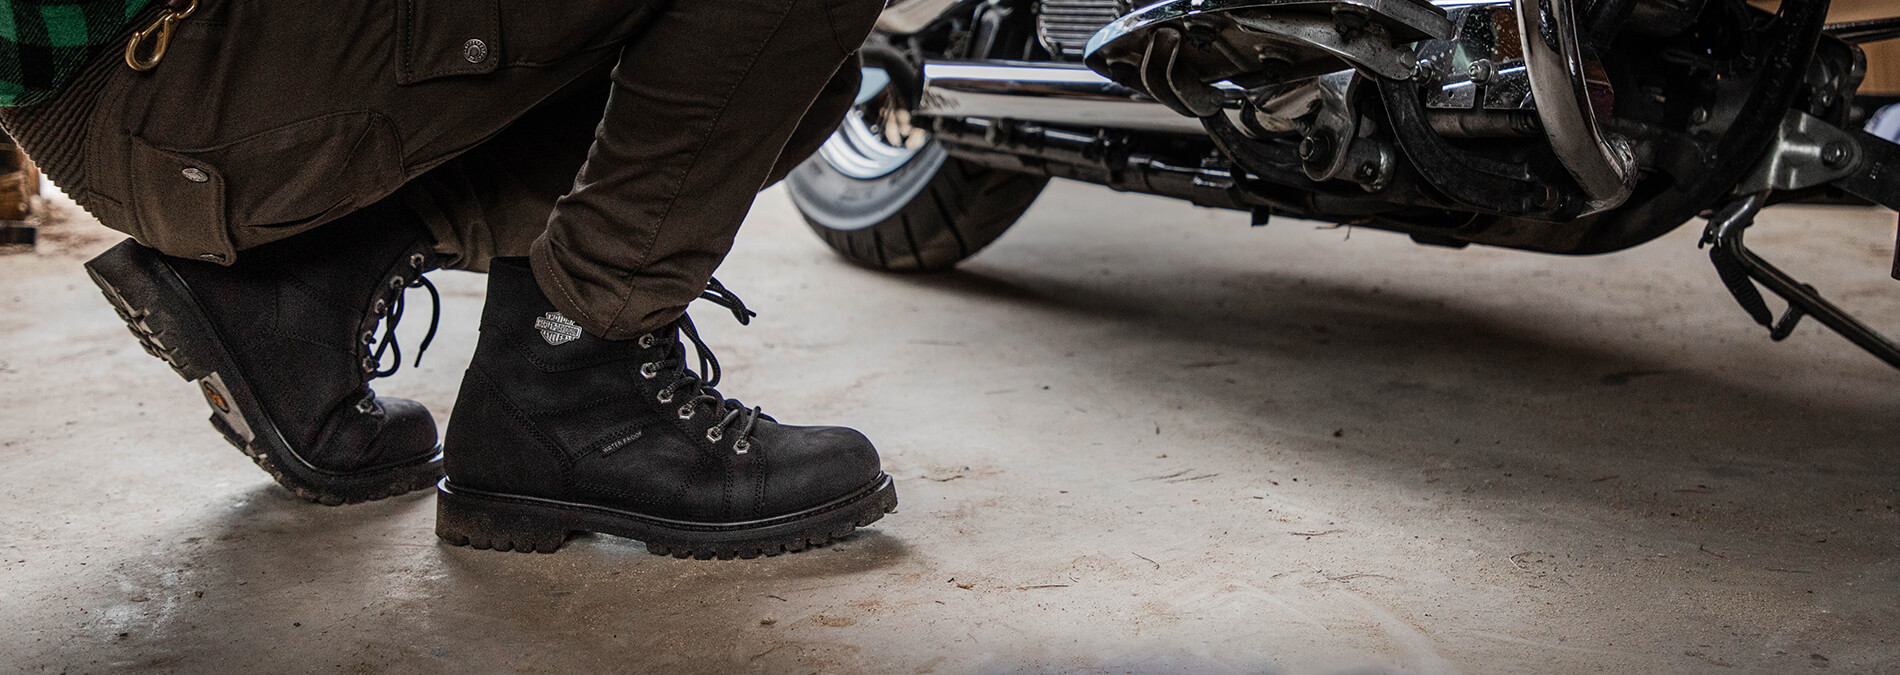 Person wearing hard-wearing boots crouches down beside a motorcycle.